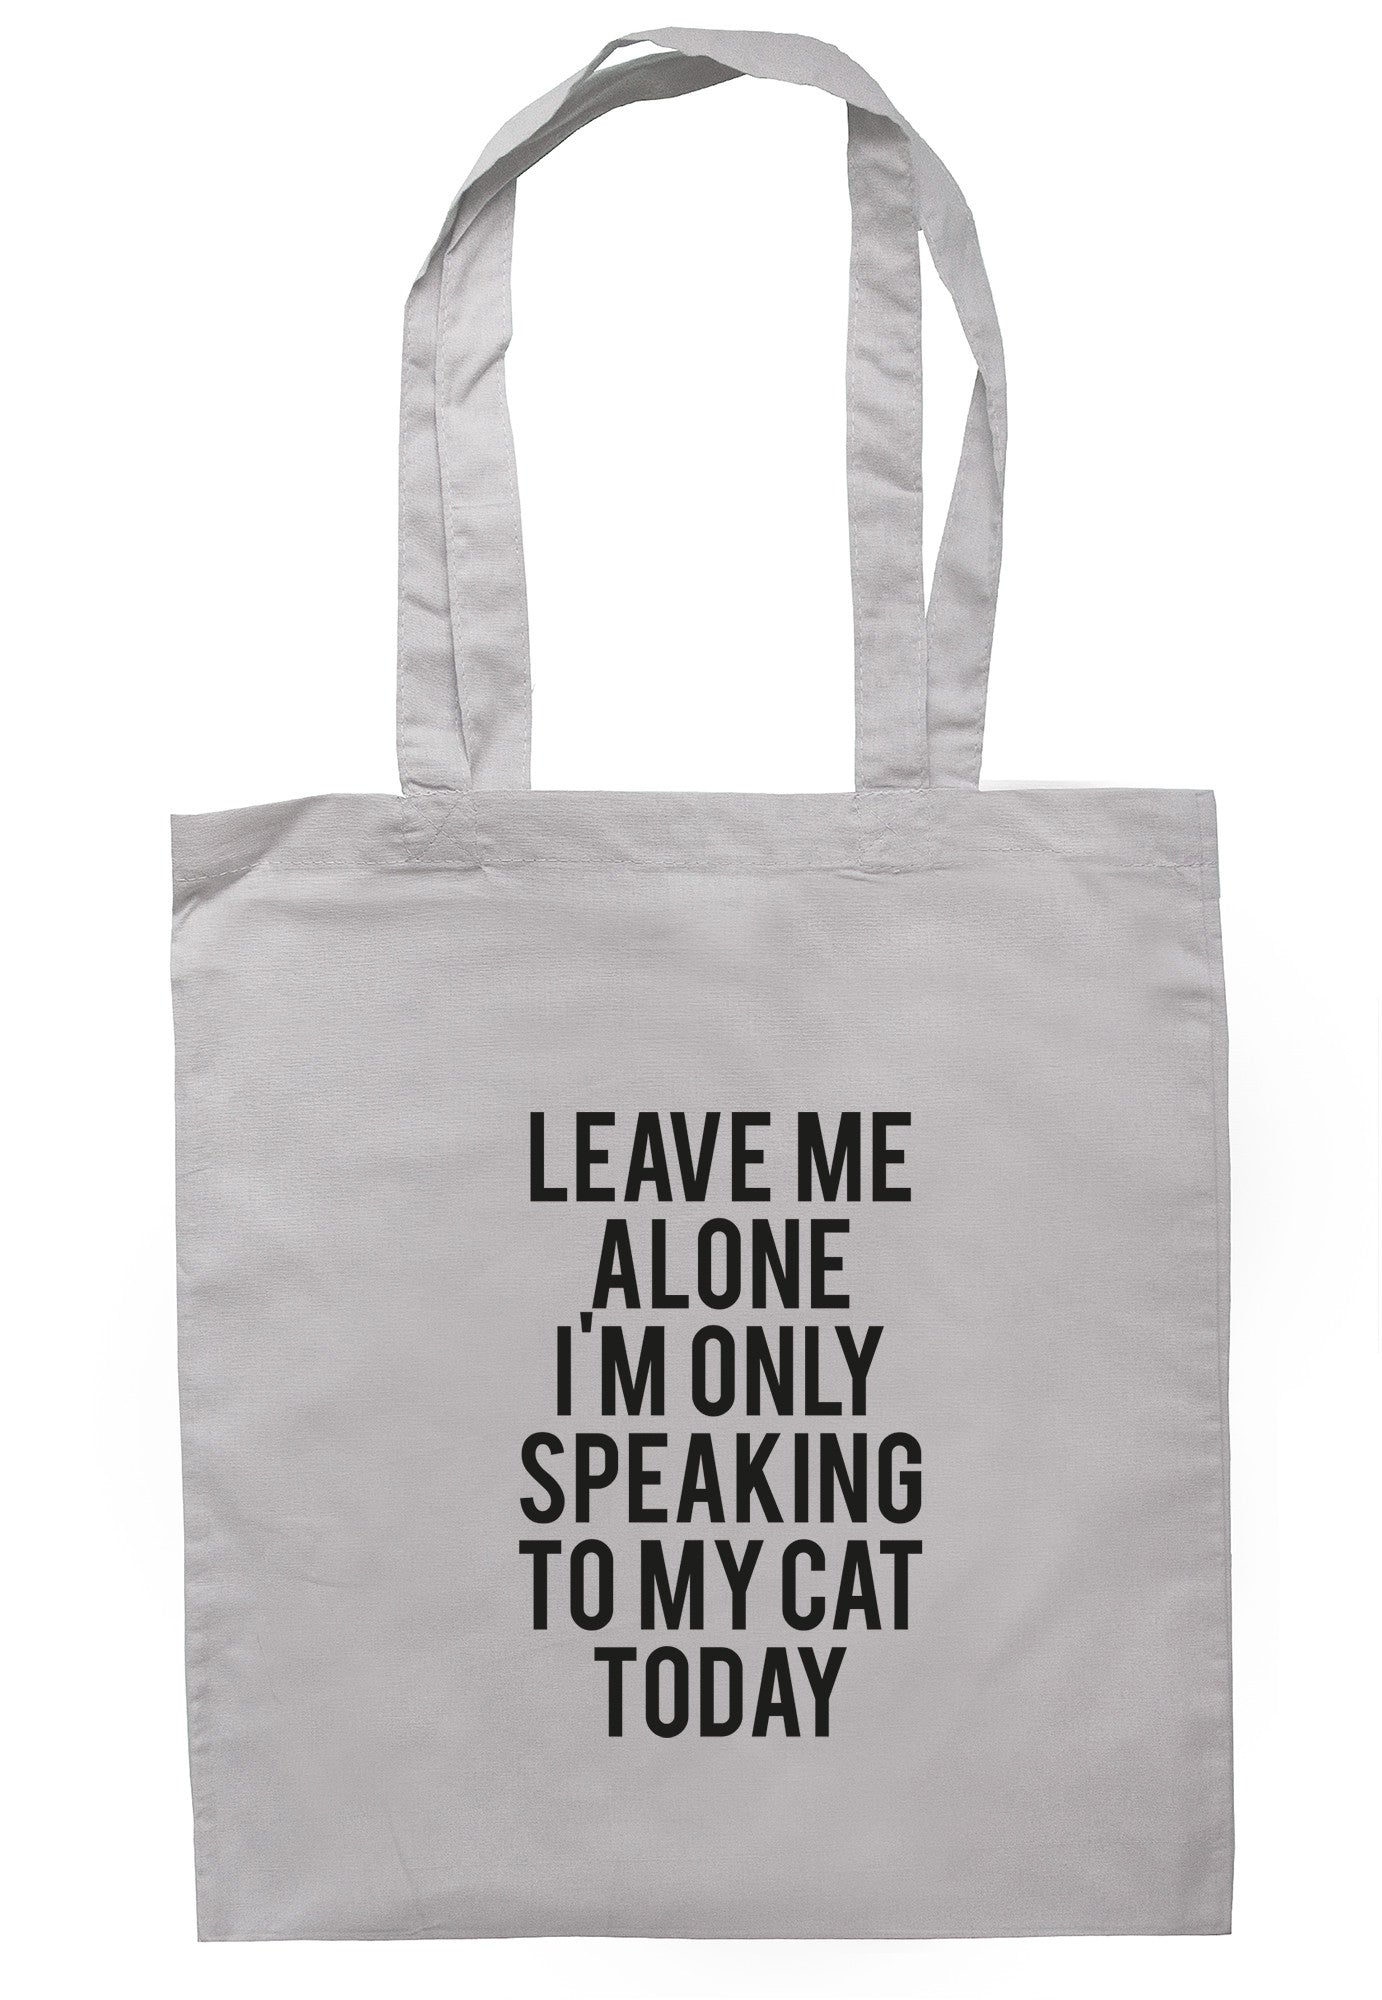 Leave Me Alone I'm Only Speaking To My Cat Today Tote Bag TB0739 - Illustrated Identity Ltd.